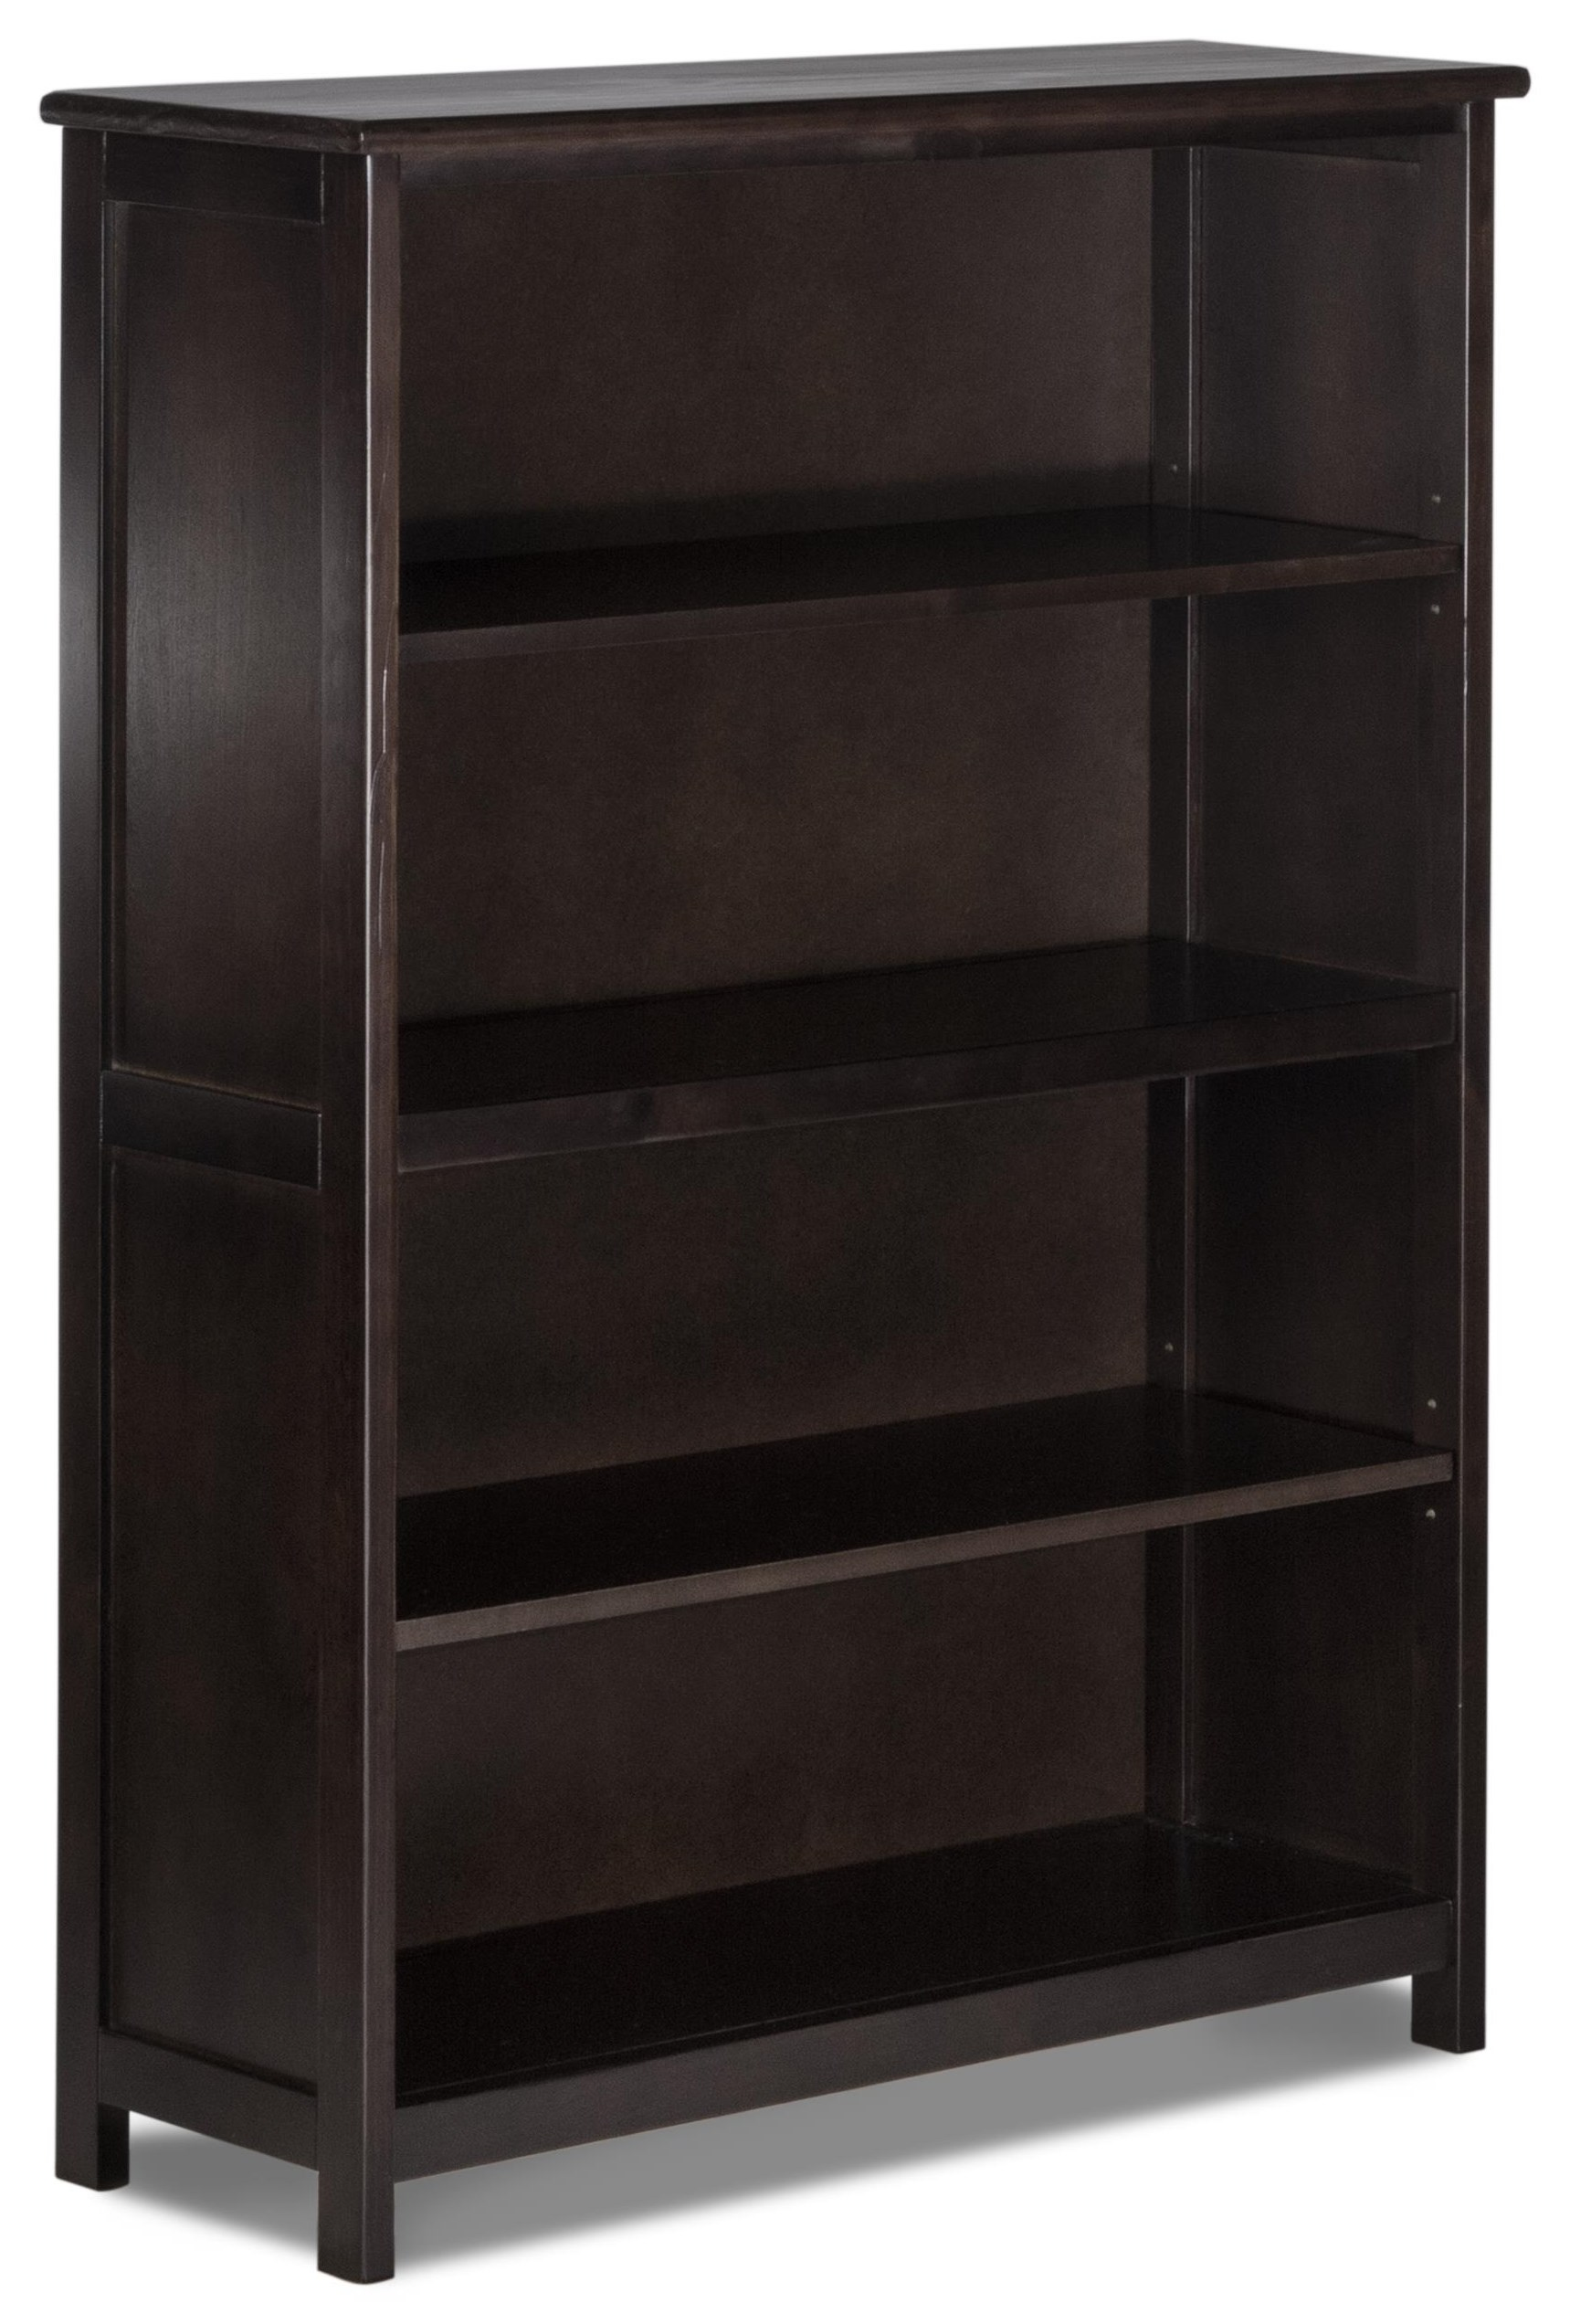 Schoolhouse Bookcase by Hillsdale at Value City Furniture